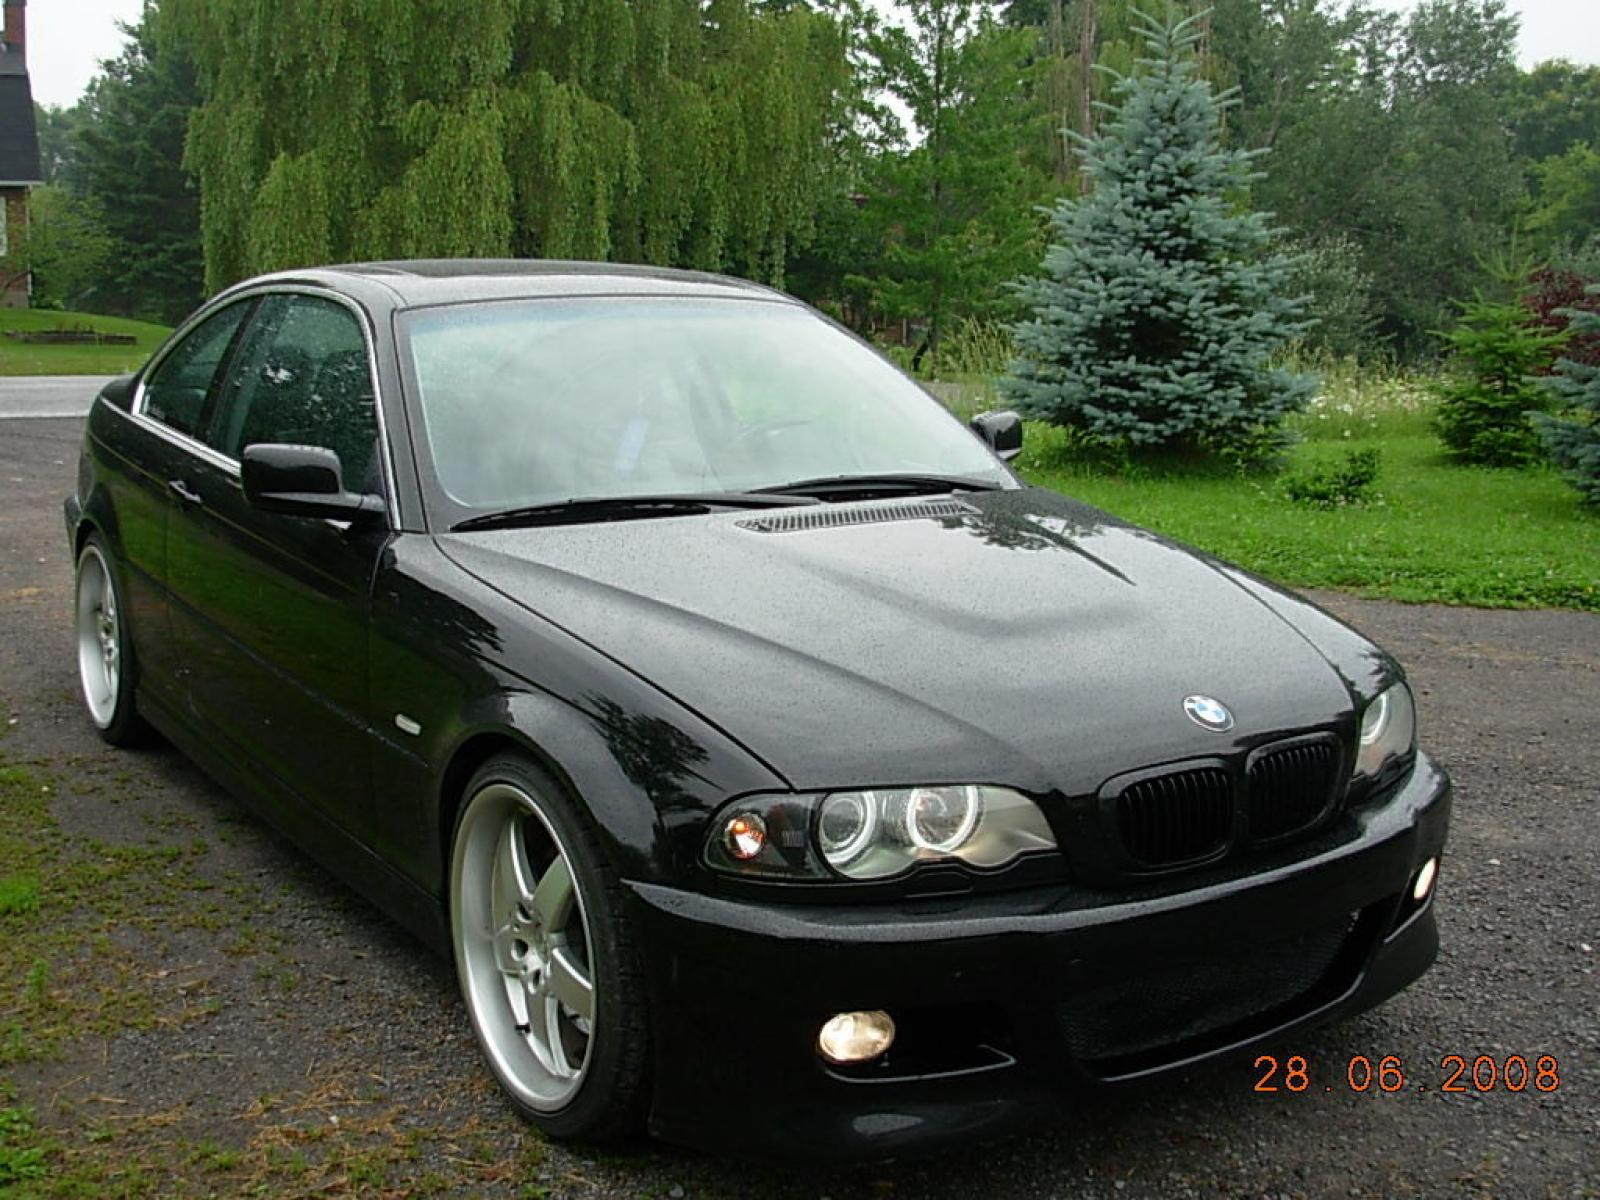 2001 Bmw 3 Series Information And Photos Zomb Drive